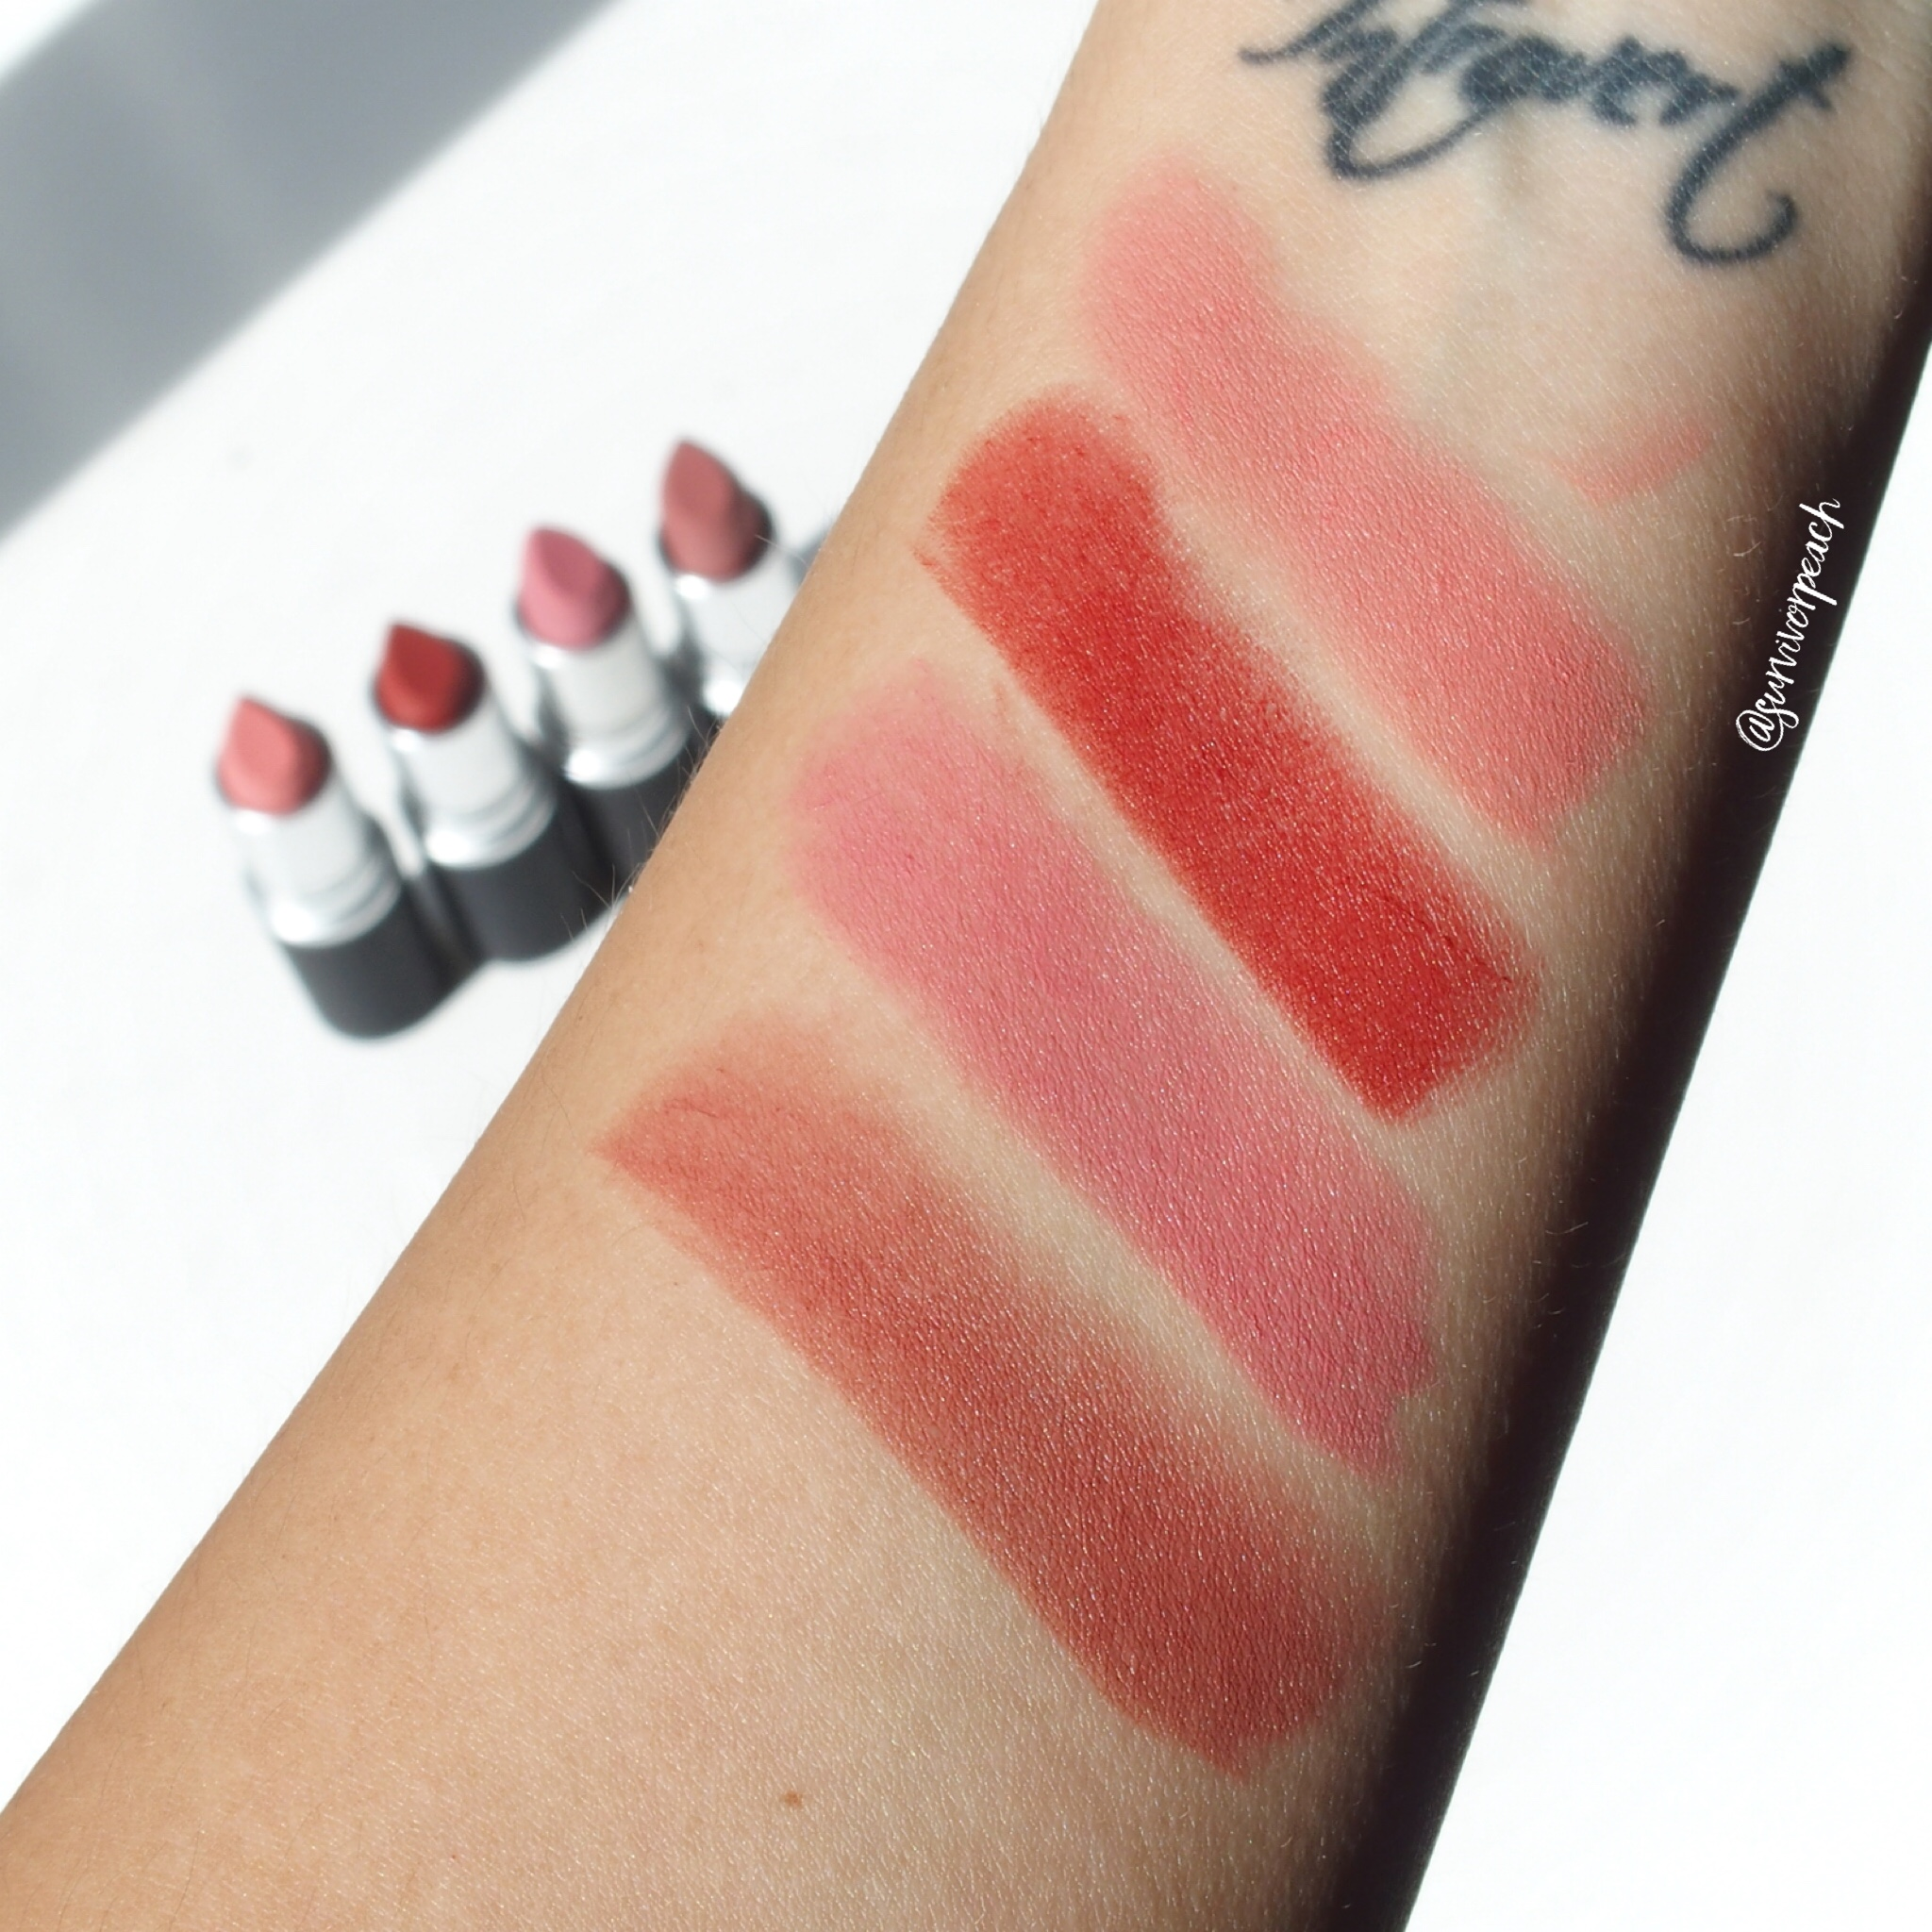 Mac Powder KISS Lipsticks swatches - Scattered Petals, Devoted to Chlli, Sultry Move, Sultriness